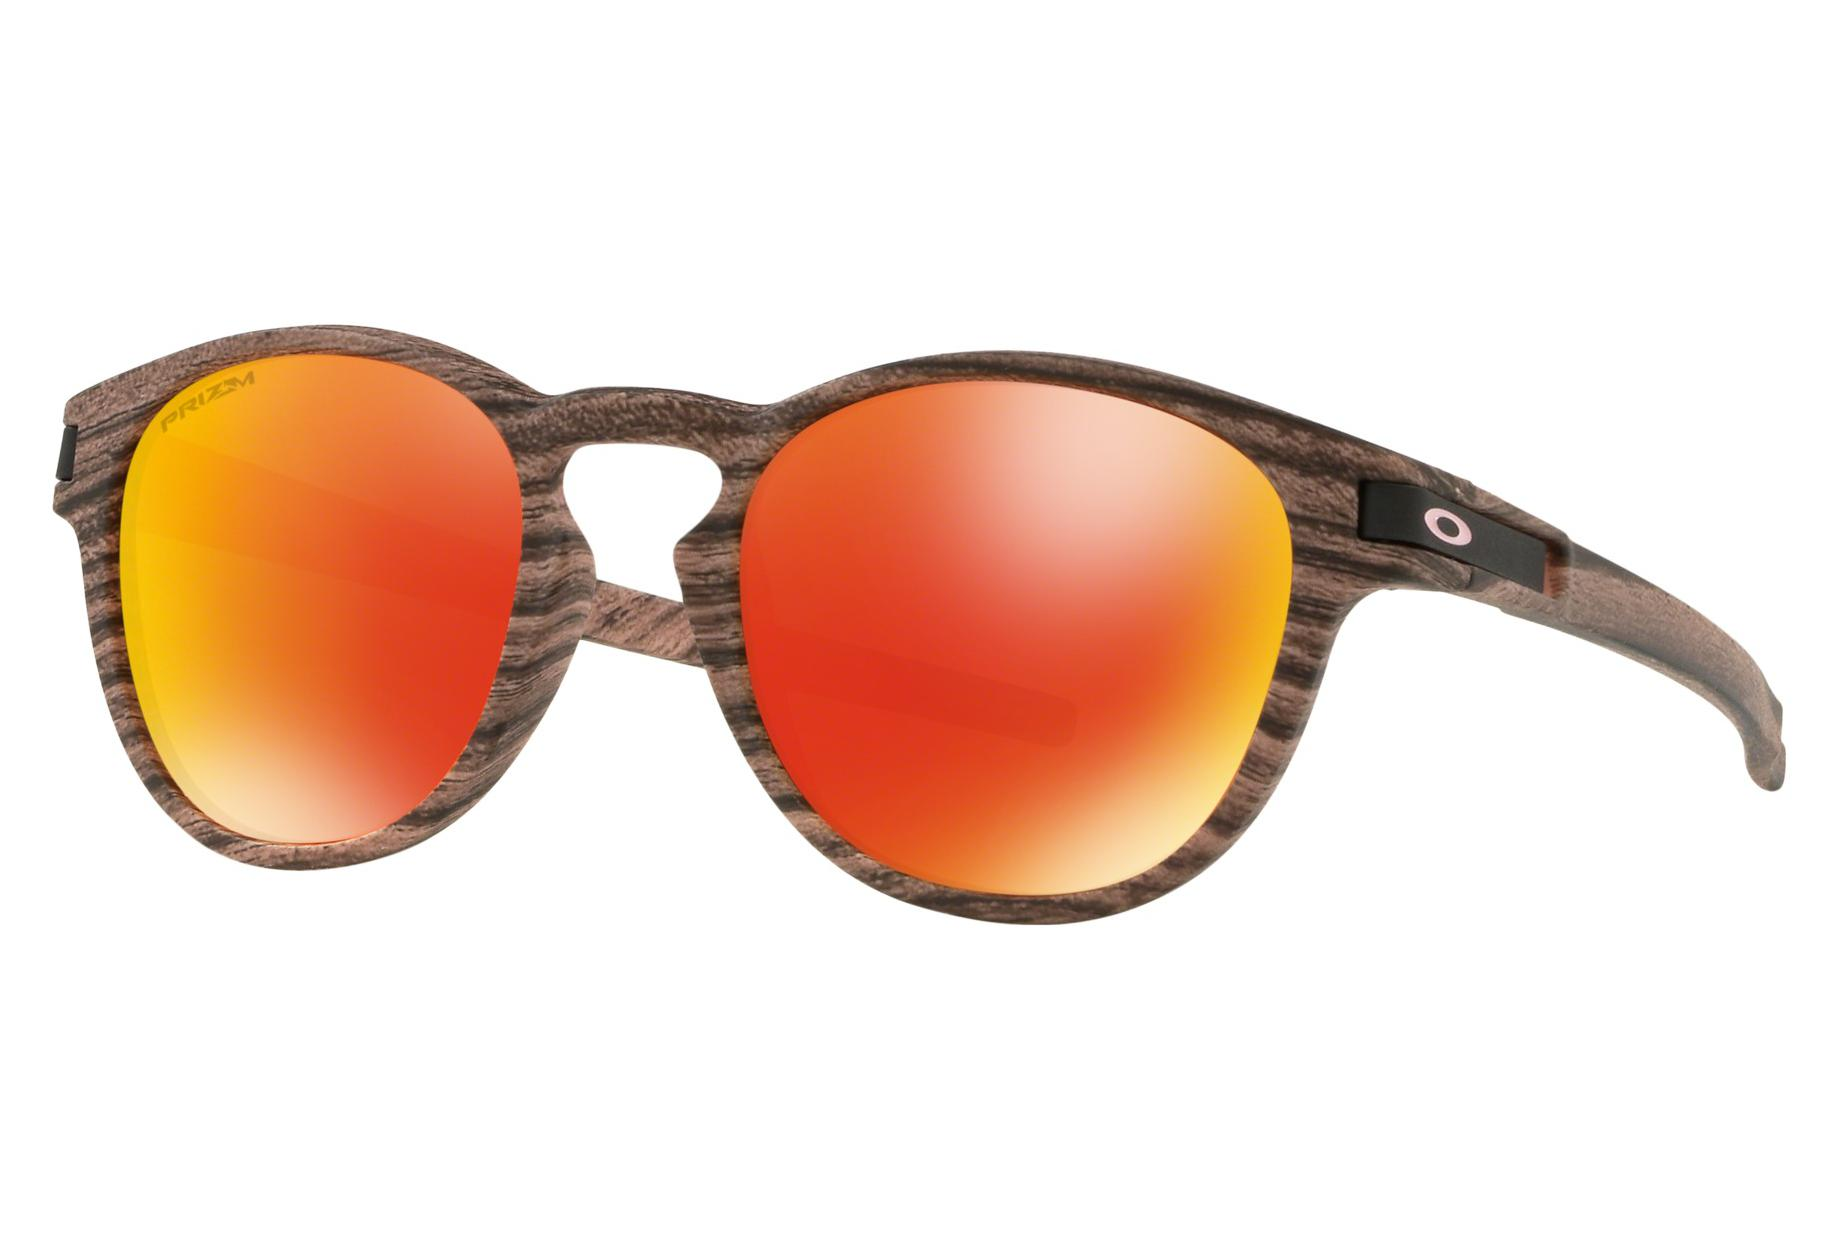 63991f73038259 Lunettes Oakley Latch Woodstain Collection   Rosewood   Prizm Ruby   Ref.  OO9265-4453